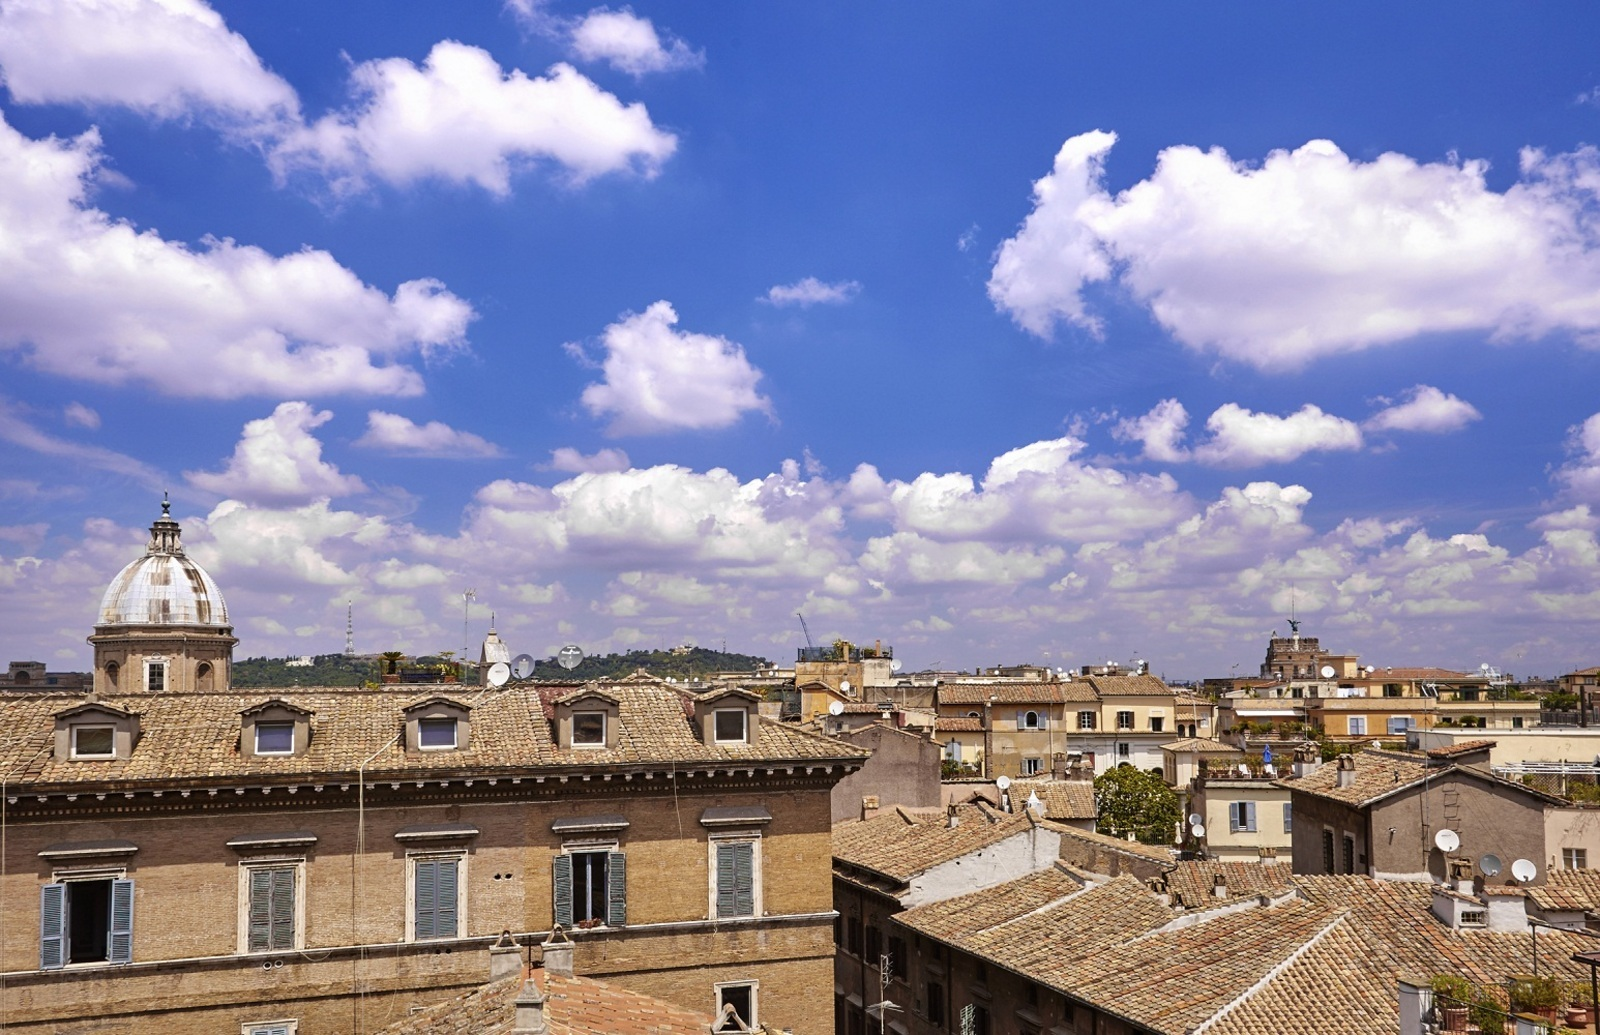 1436168617_Roofs_of_Rome.jpg